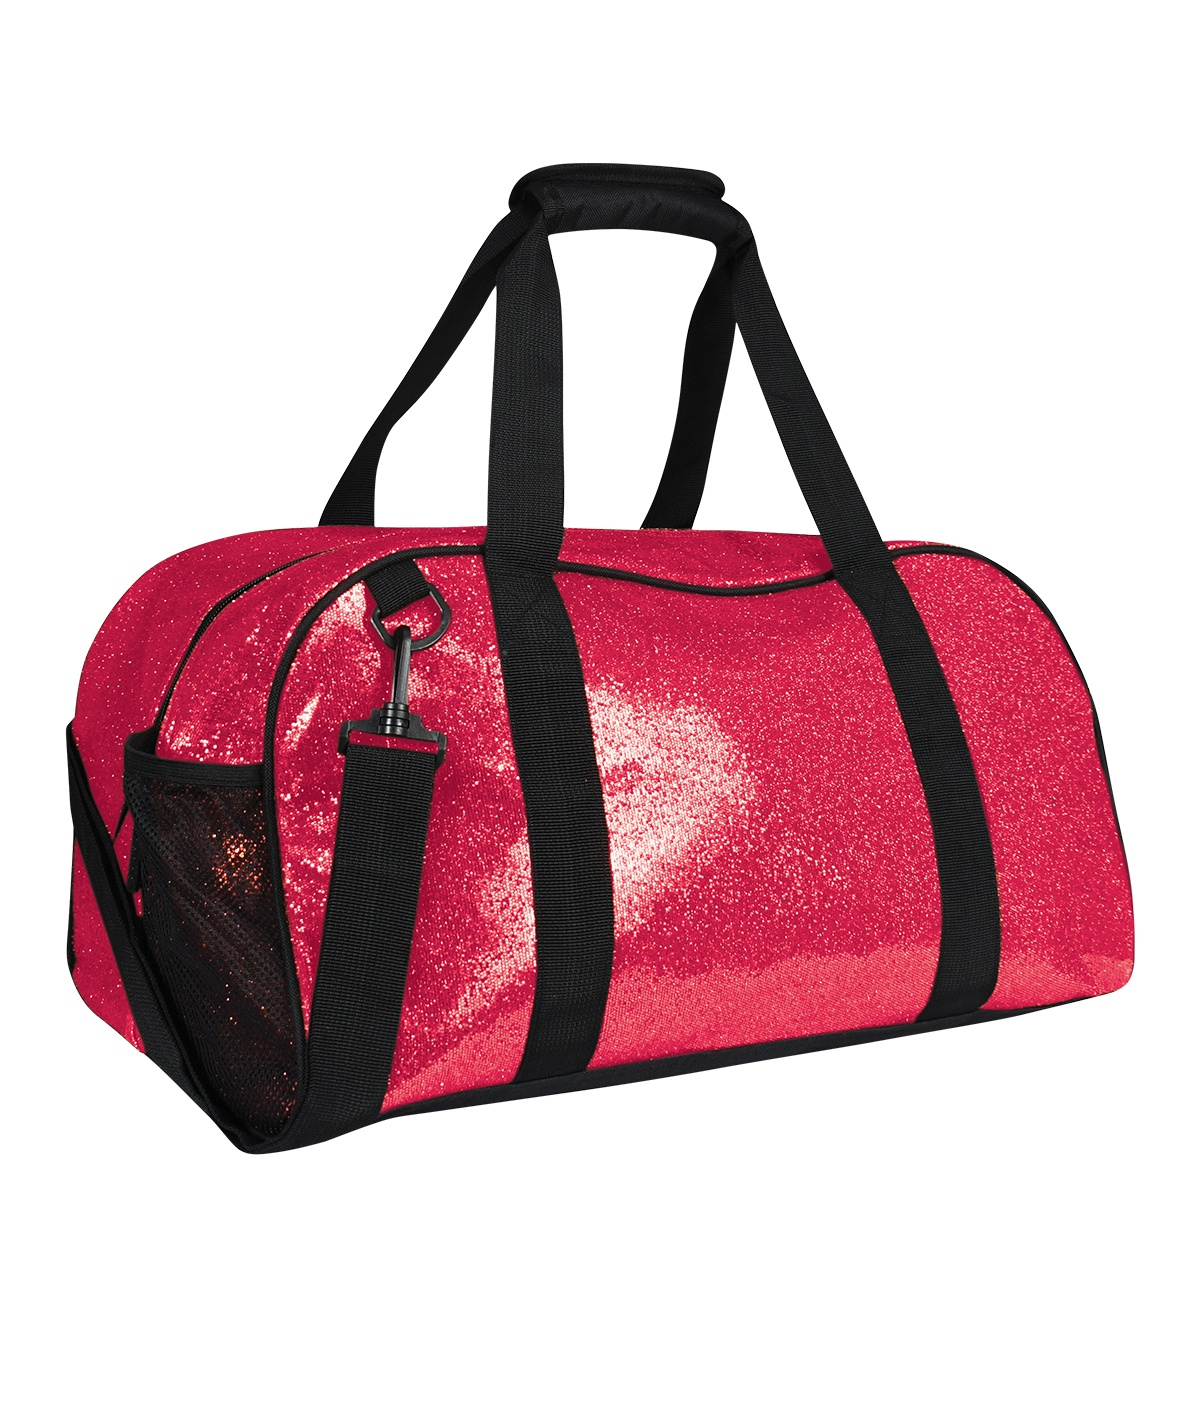 Chasse Shimmer Duffle Bag